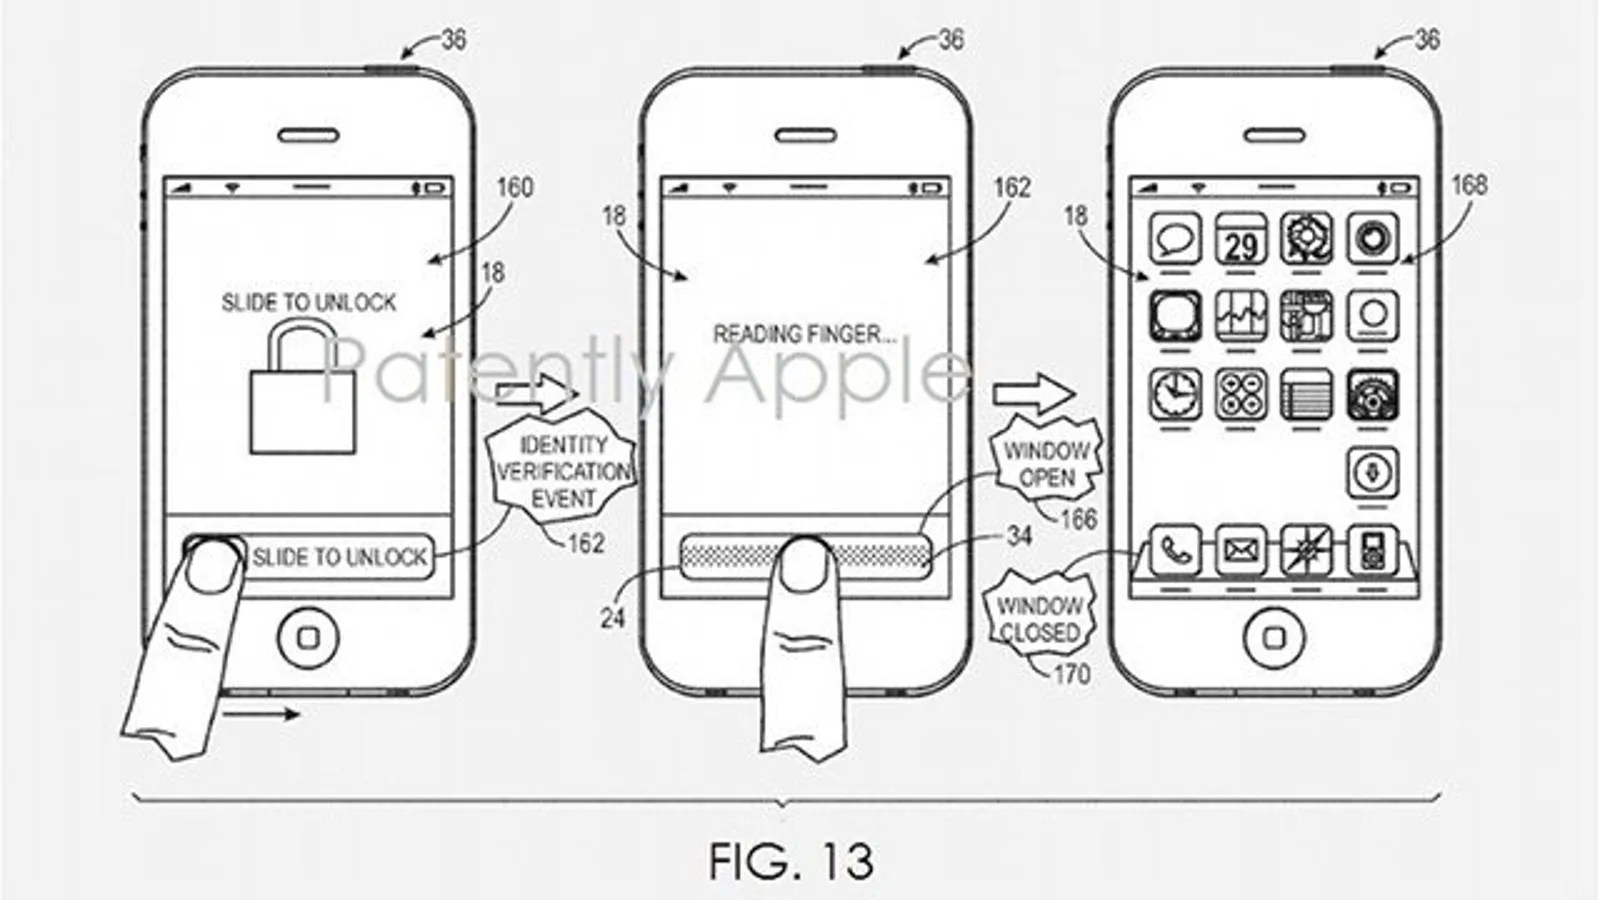 Apple Wants To Use Your Fingerprints to Unlock Your iPhone